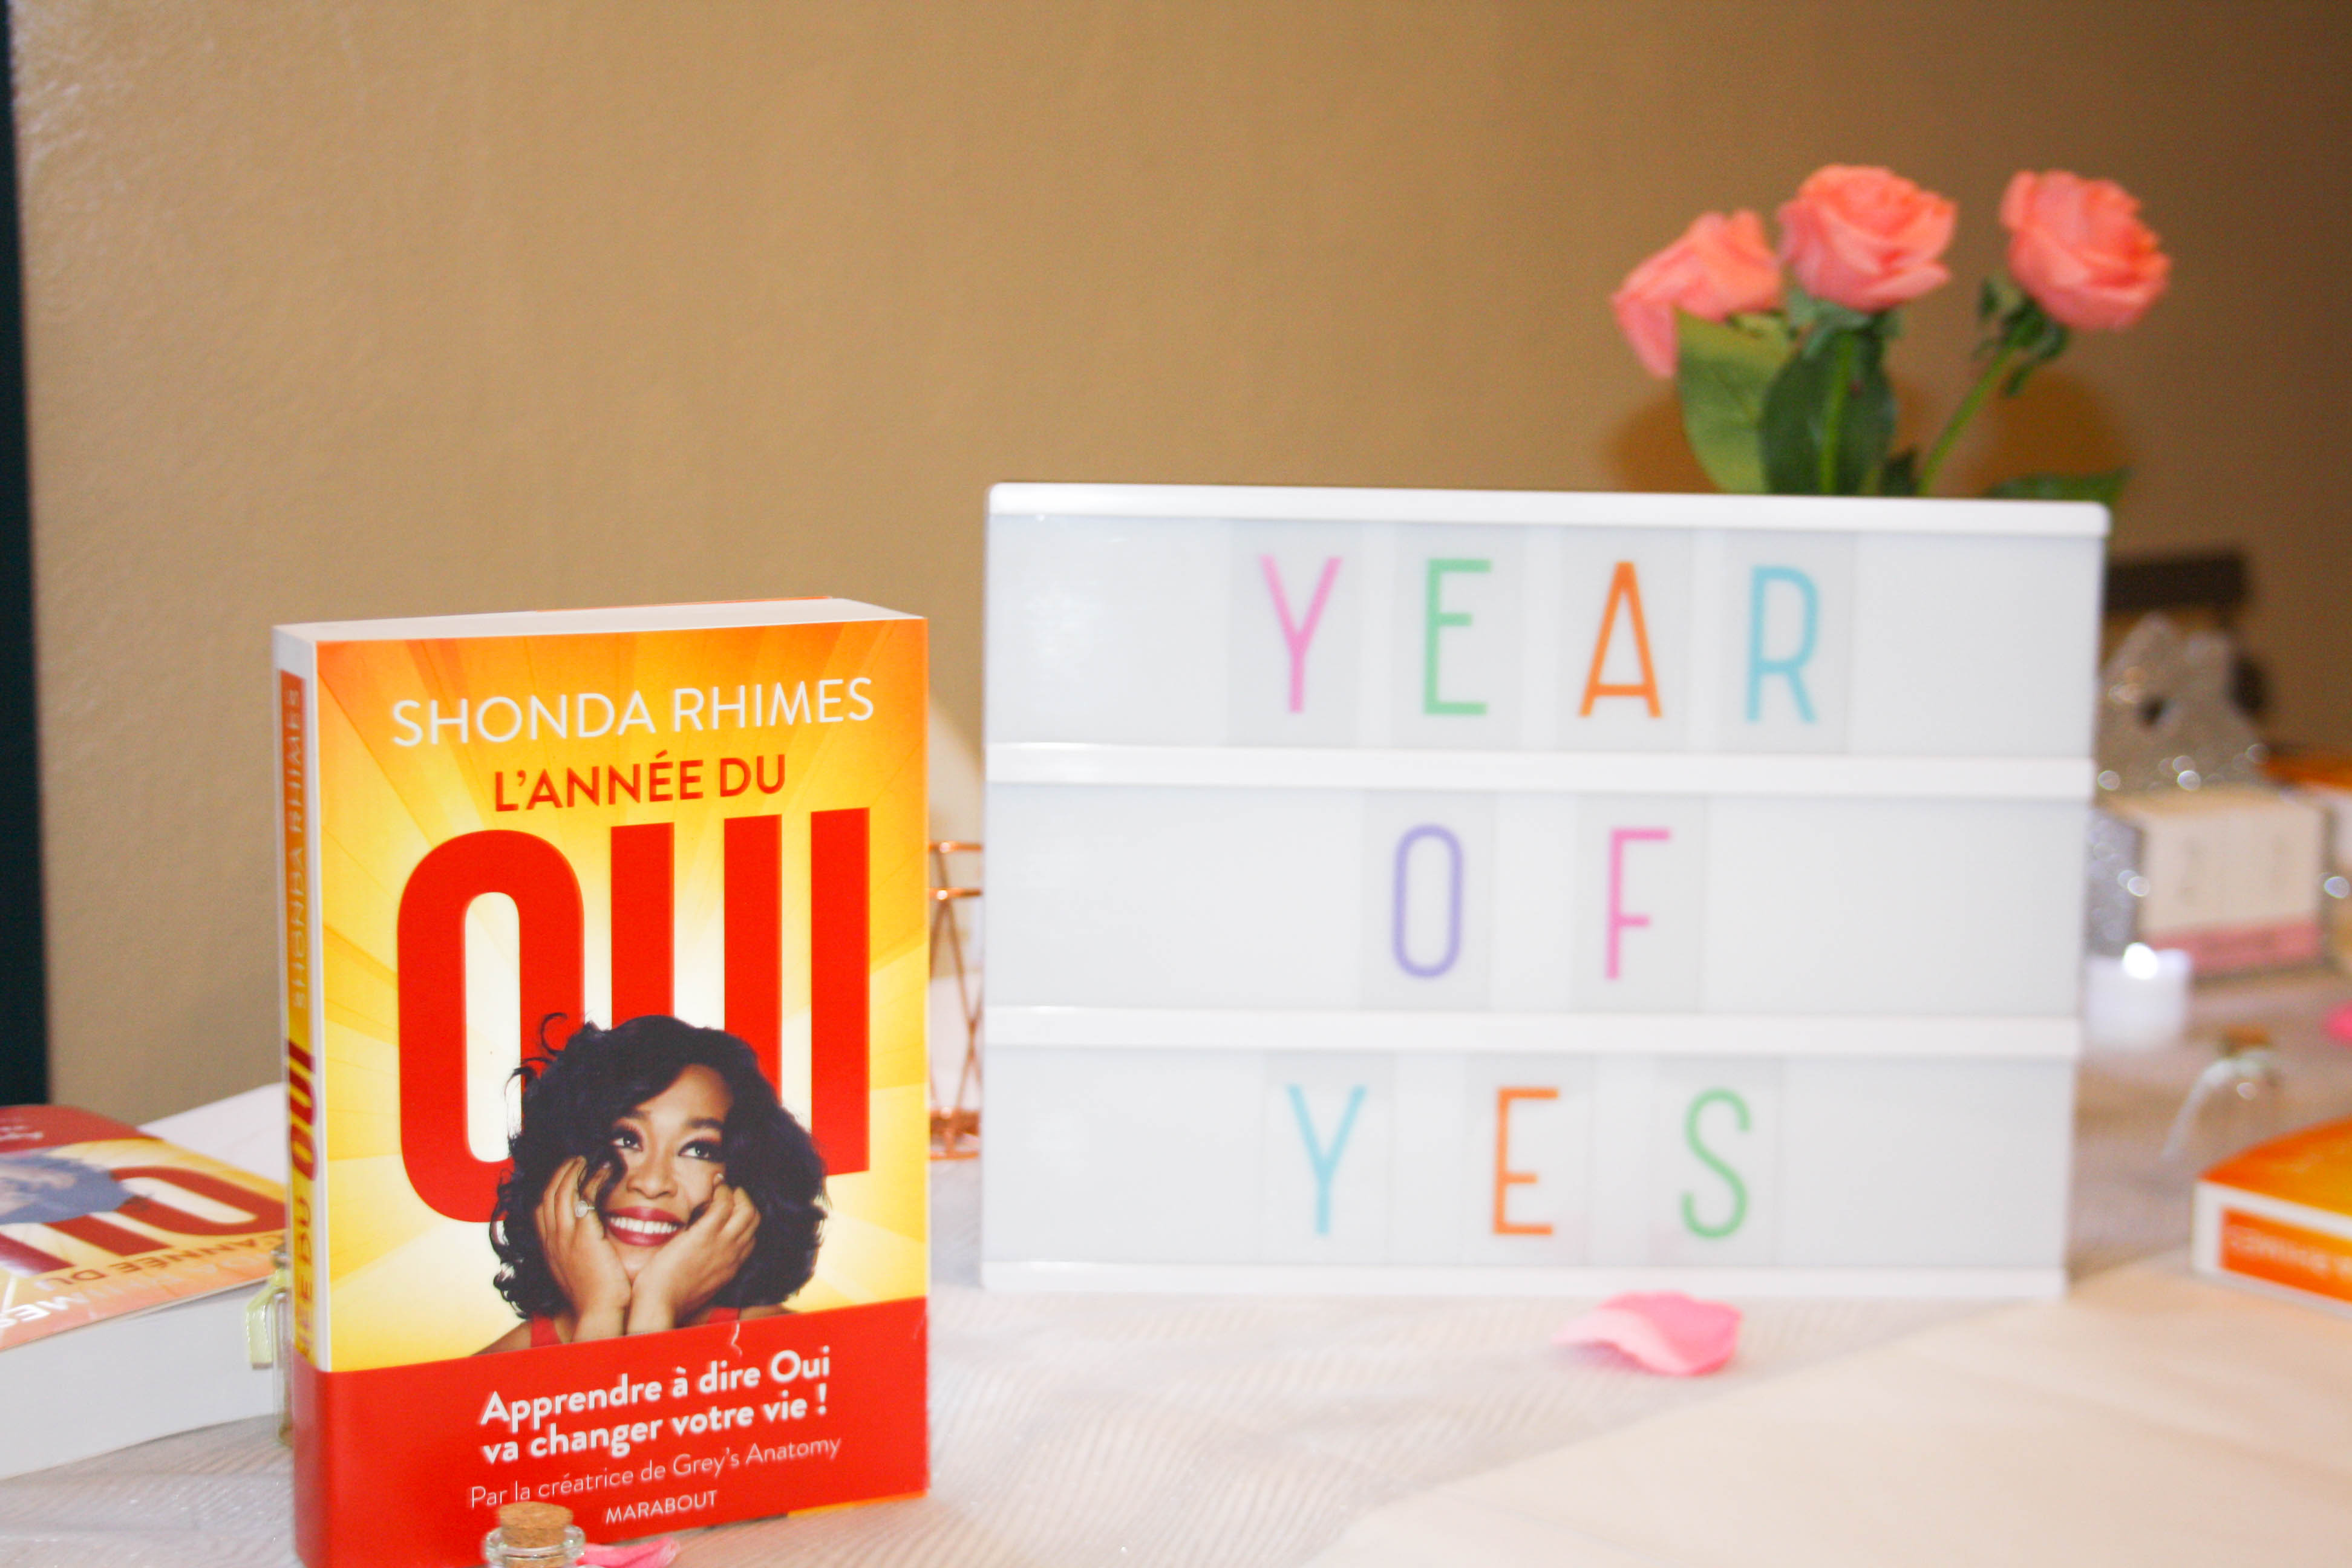 L'année du Oui - Year of Yes